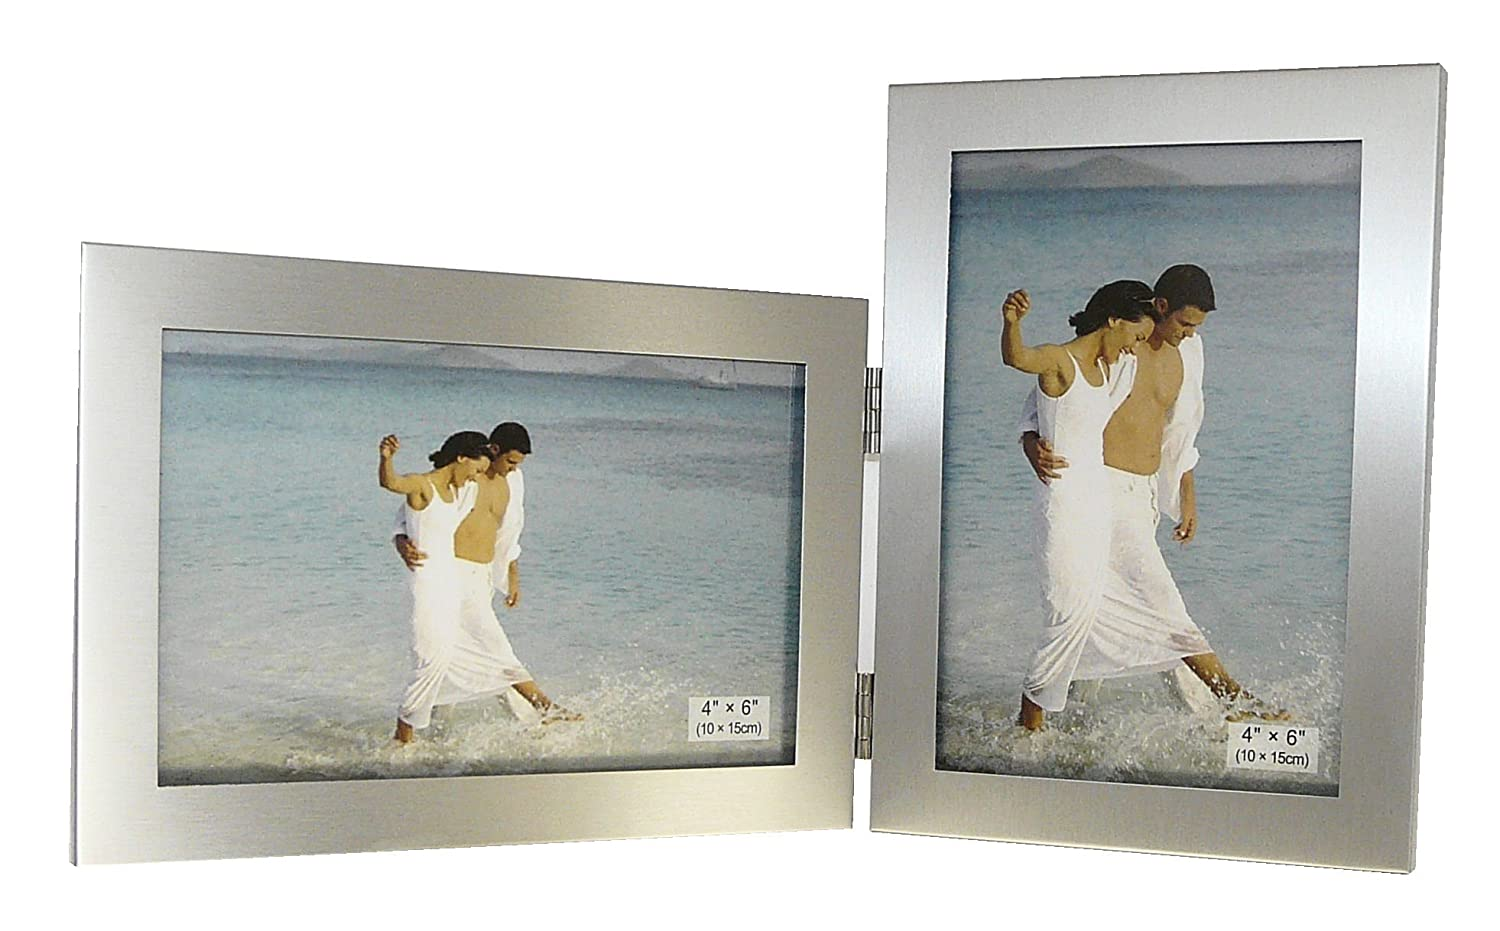 amazoncom brushed aluminium satin silver color twin 2 picture double folding photo frame gift takes 2 standard 6 x 4 inch photographs 1 landscape and